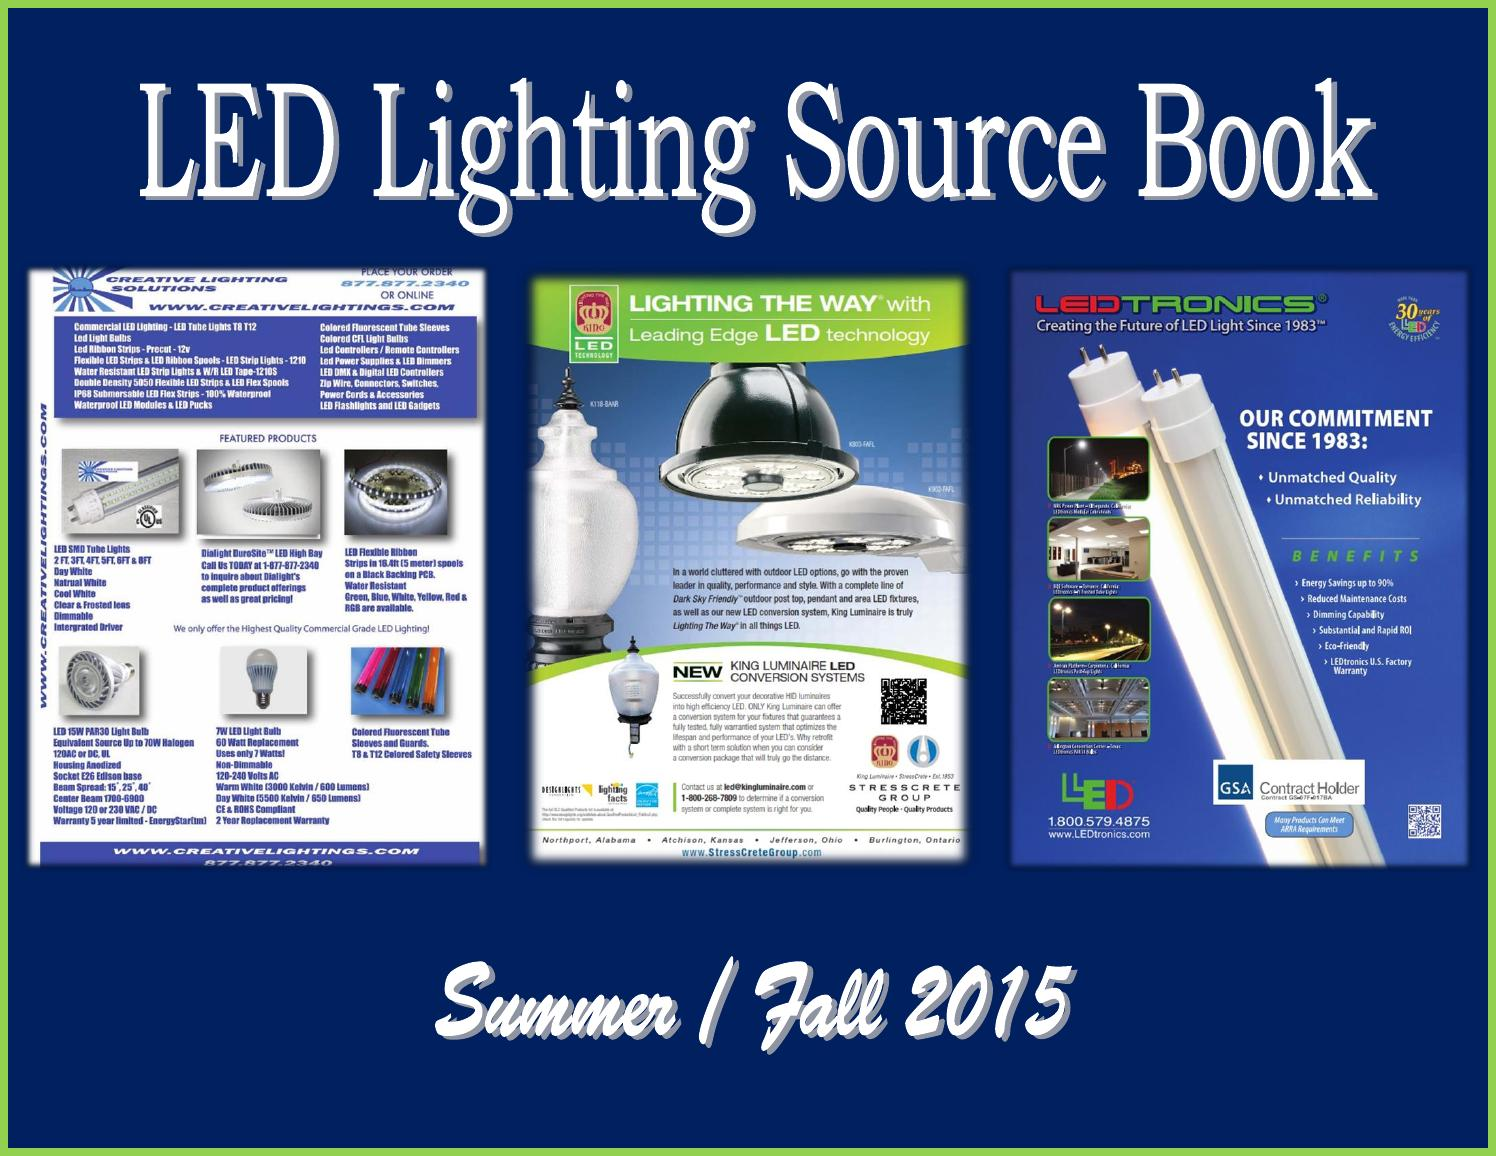 Led Lighting Source Book By Federal Buyers Guide Inc Issuu Meters Scanners Circuit Breaker Finders Sperry Finder